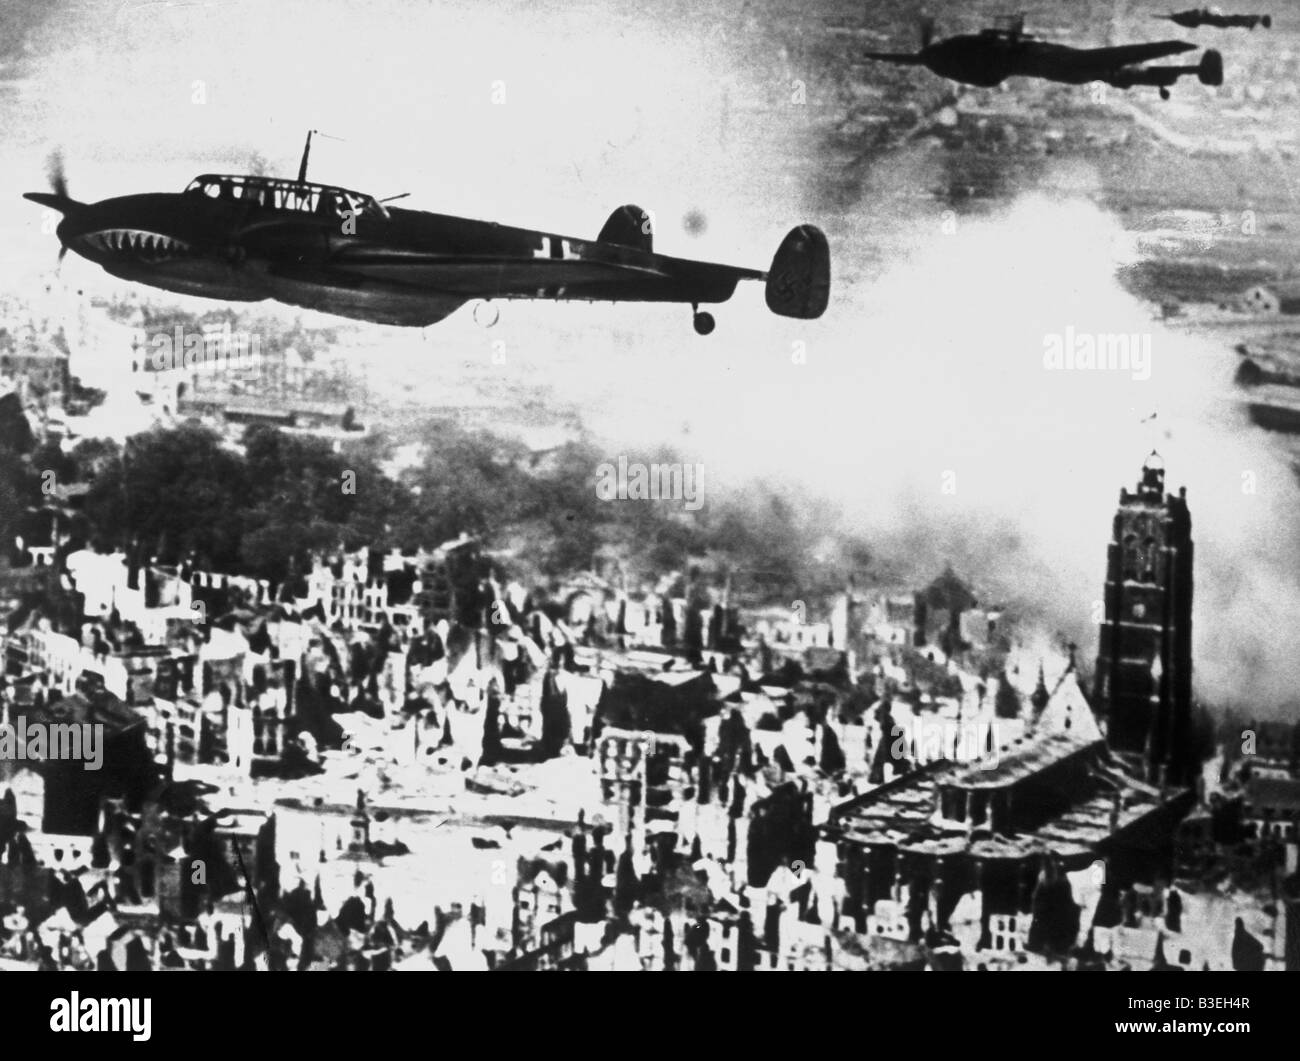 World War II/Bombers/Dunkirk. - Stock Image